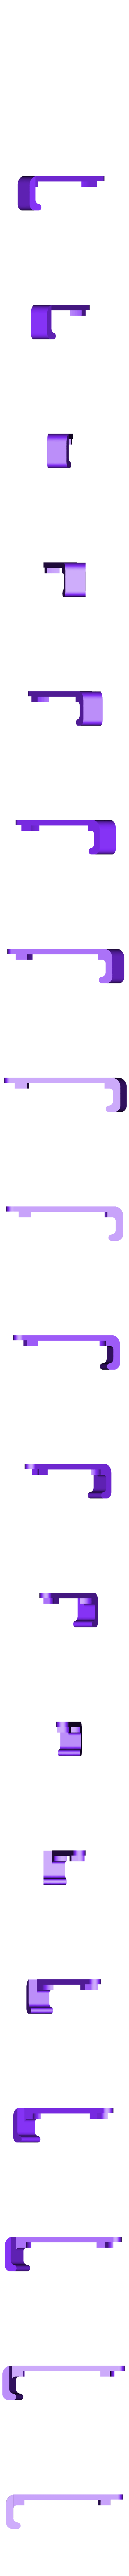 Arm_R.stl Download free STL file Mechanical Quick Grab/Release Phone Stand • 3D printable object, arron_mollet22